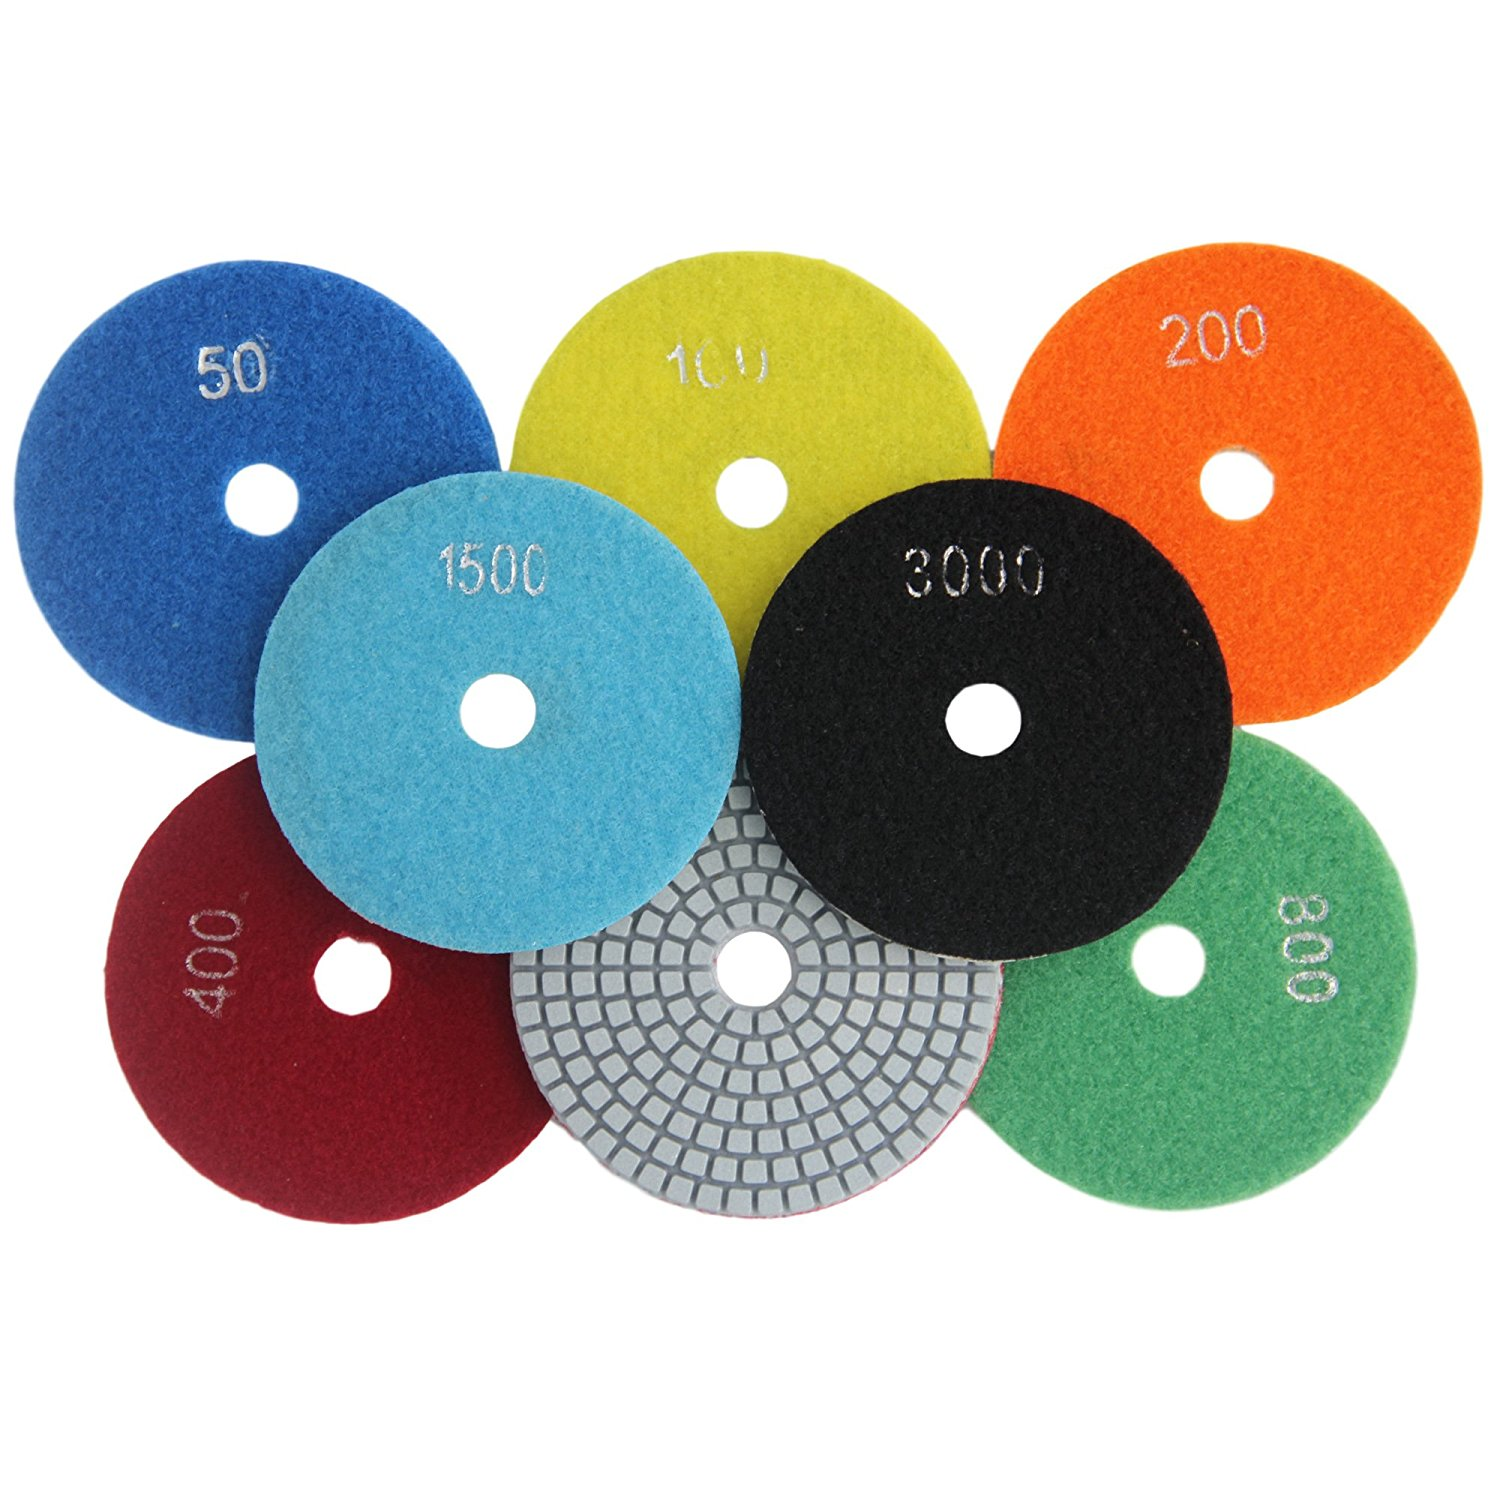 Konfor 3 Inch Diamond Wet Polishing Pads Tool Set 7 Piece for Grinding Marble Granite